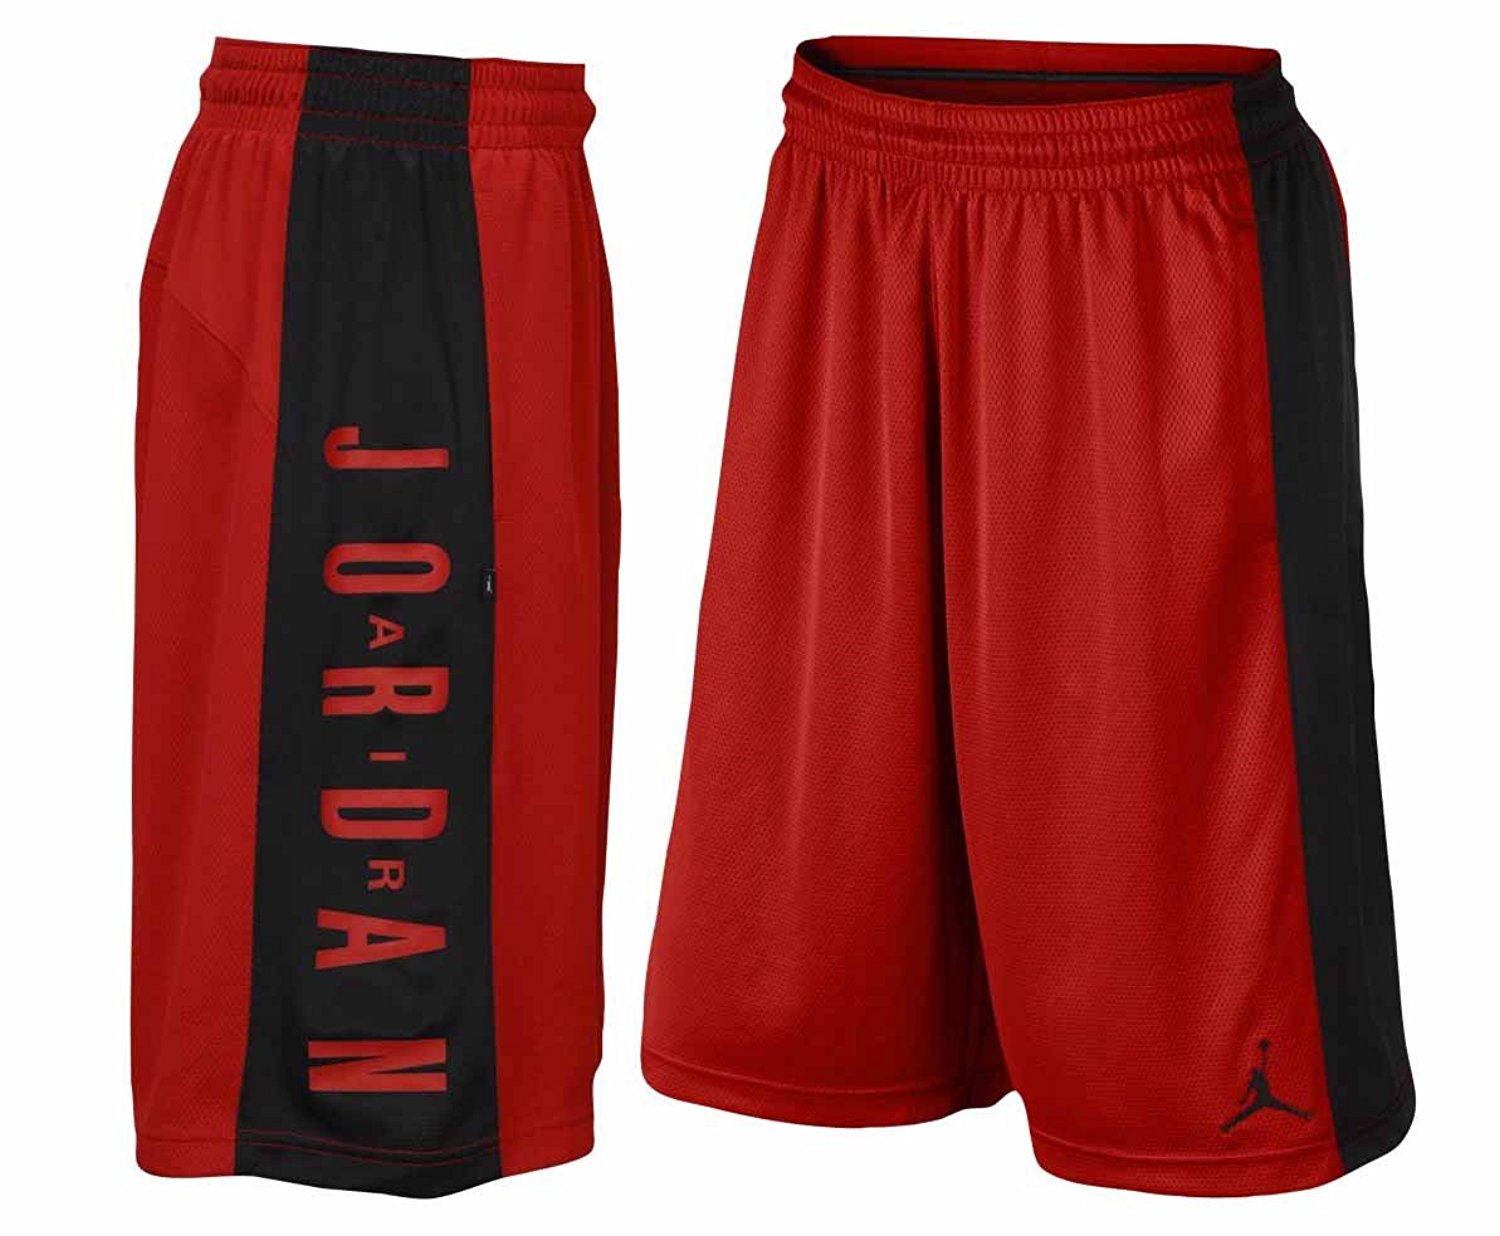 49a98319a20 Get Quotations · Jordan Men's Dri-Fit Nike AJ Highlight Basketball Shorts-Gym  Red-Small